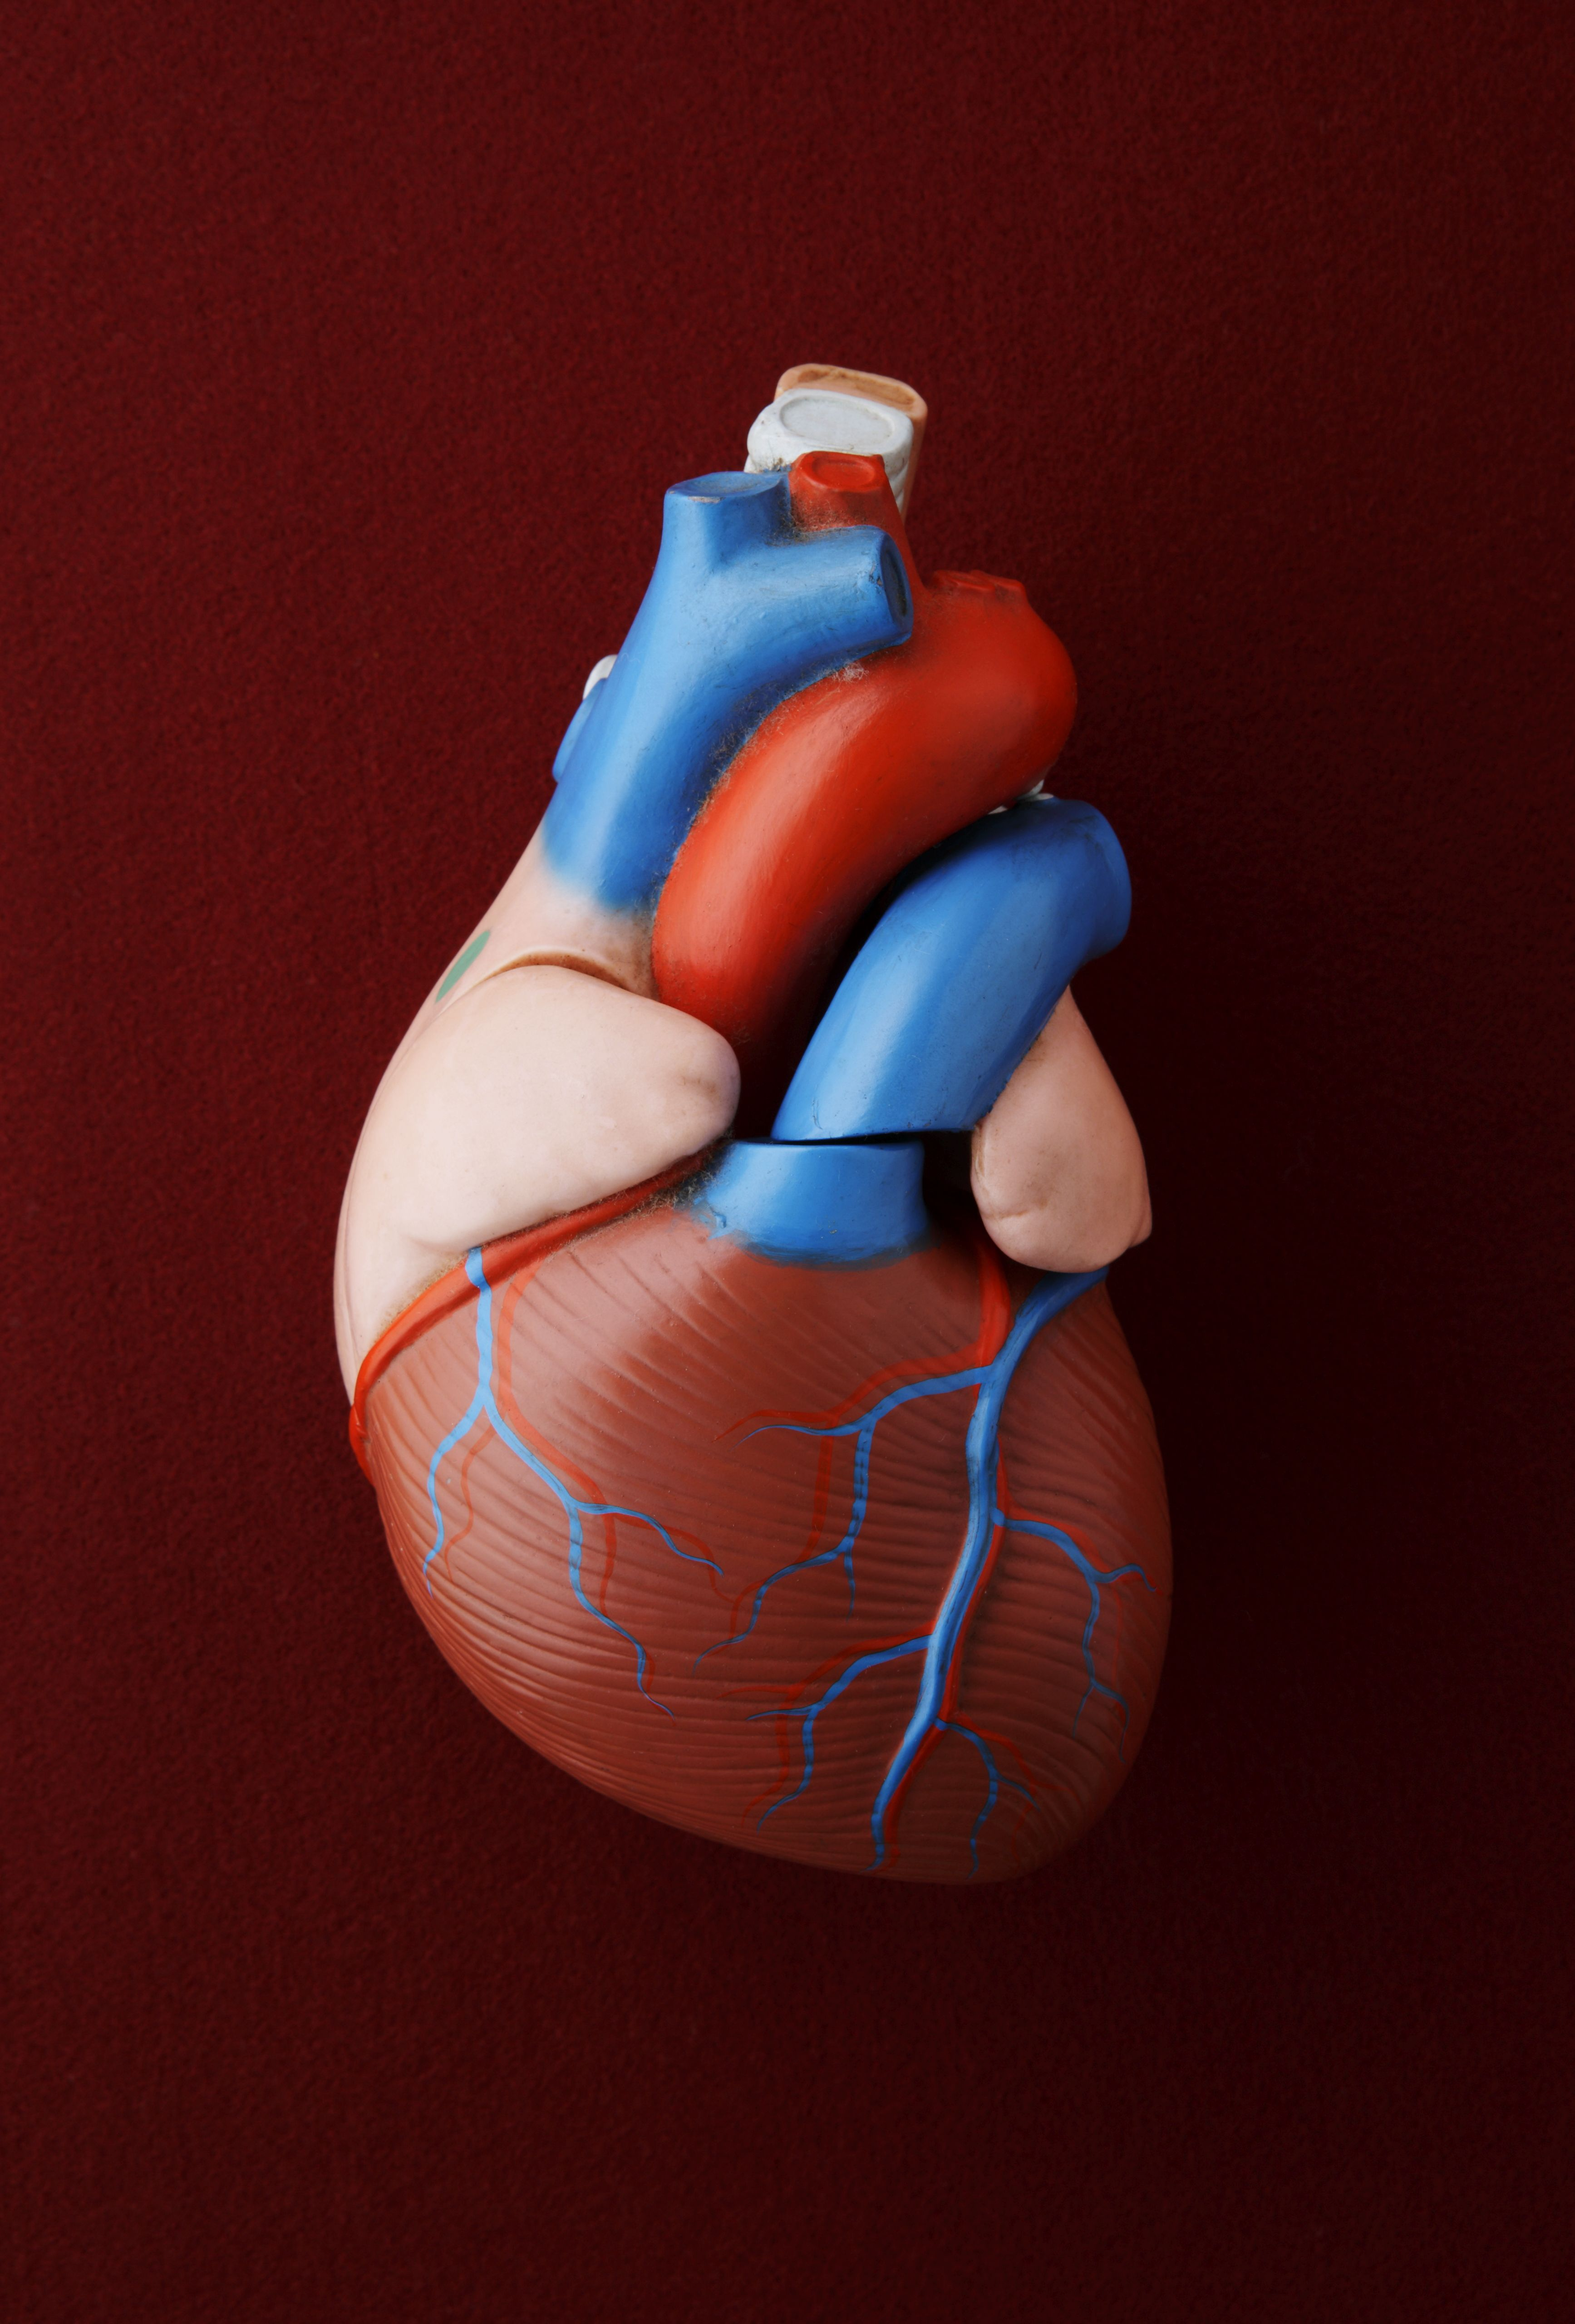 Heart Is An International Peer Reviewed Journal: What Is The Ejection Fraction?